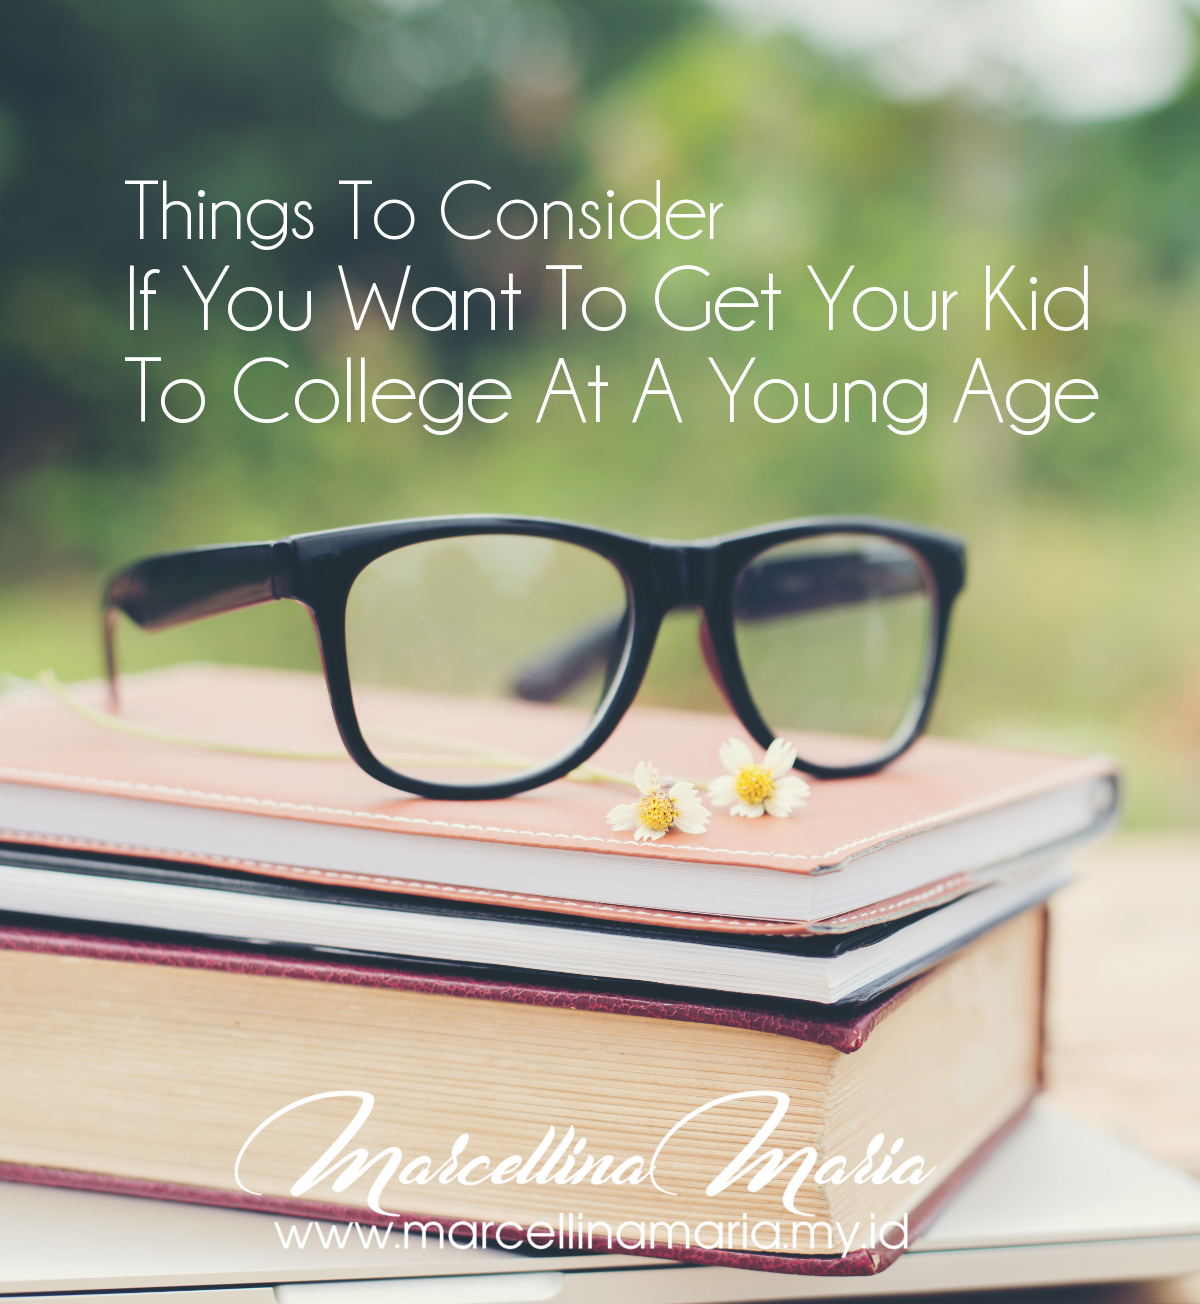 Things to consider if you want to get your kid to college at a young age